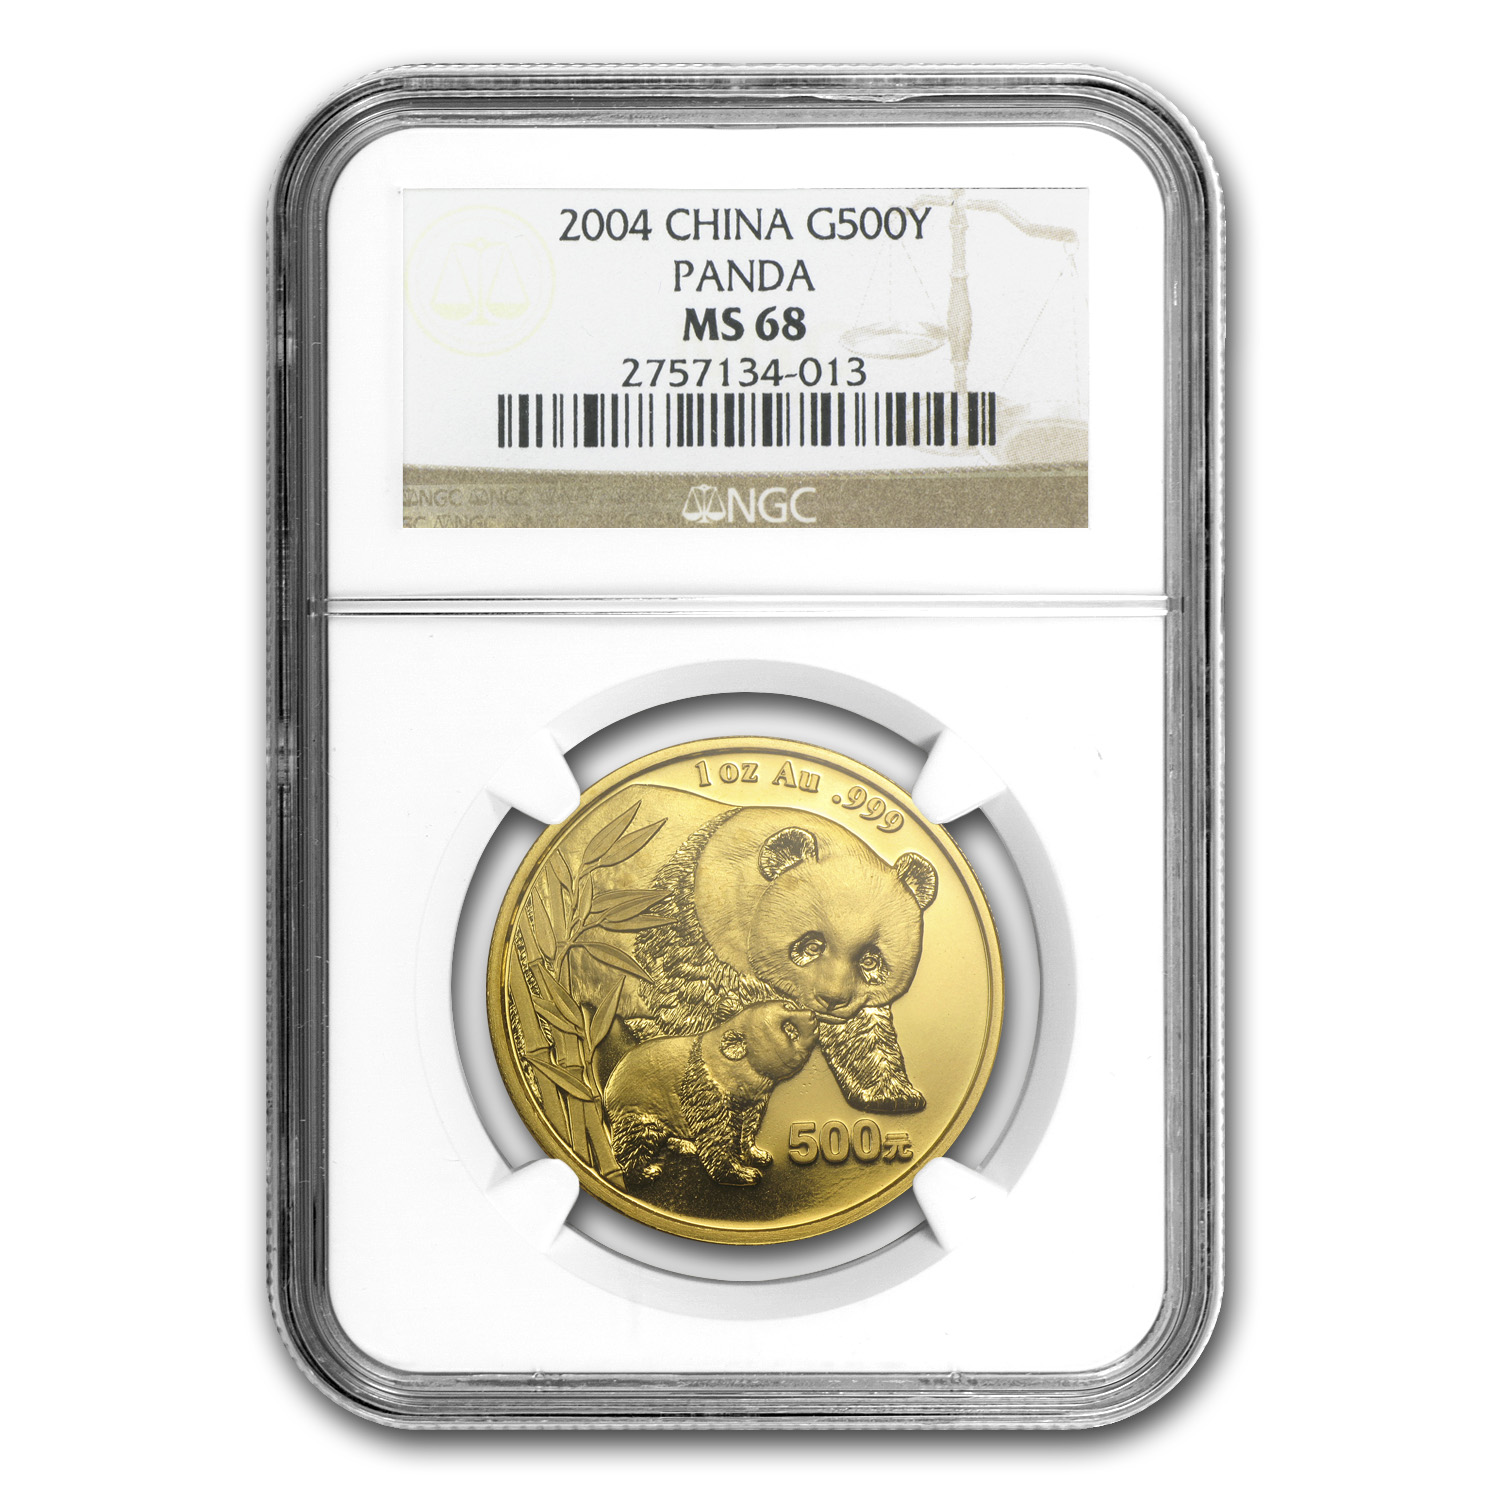 2004 1 oz Gold Chinese Panda MS-68 NGC